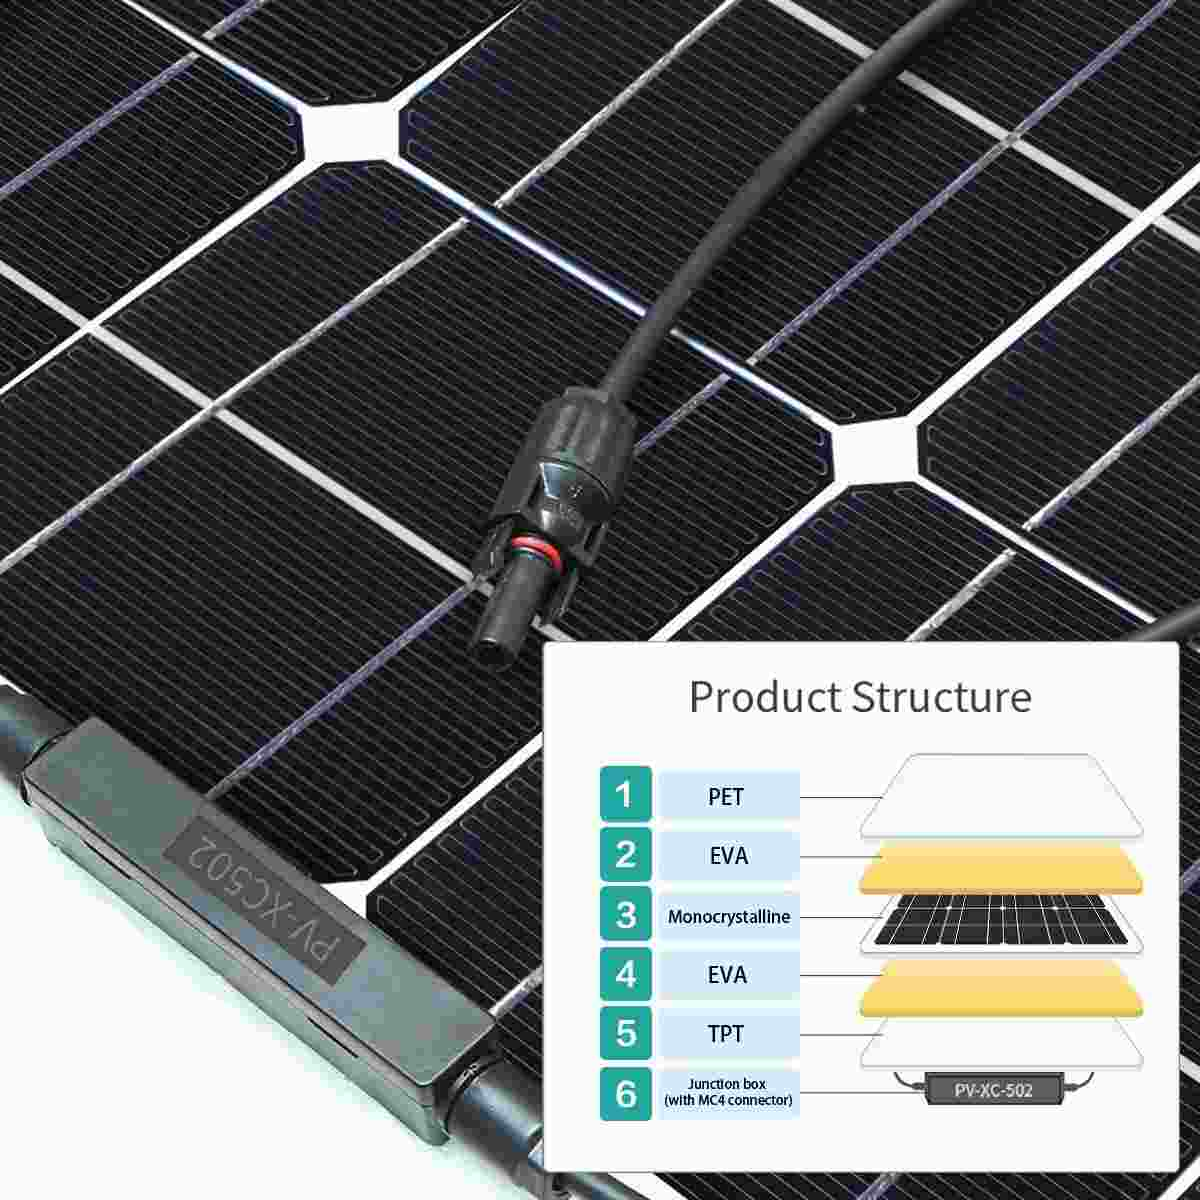 Hinergy Flexible Solar Panel 100w 18V 12V with MC4 Connectors Flexible Bendable Off-grid Solar Panel Charger for 12 Volt Battery, RV, Boat, Car, Motorhome, Camping Made in China Thumb 3